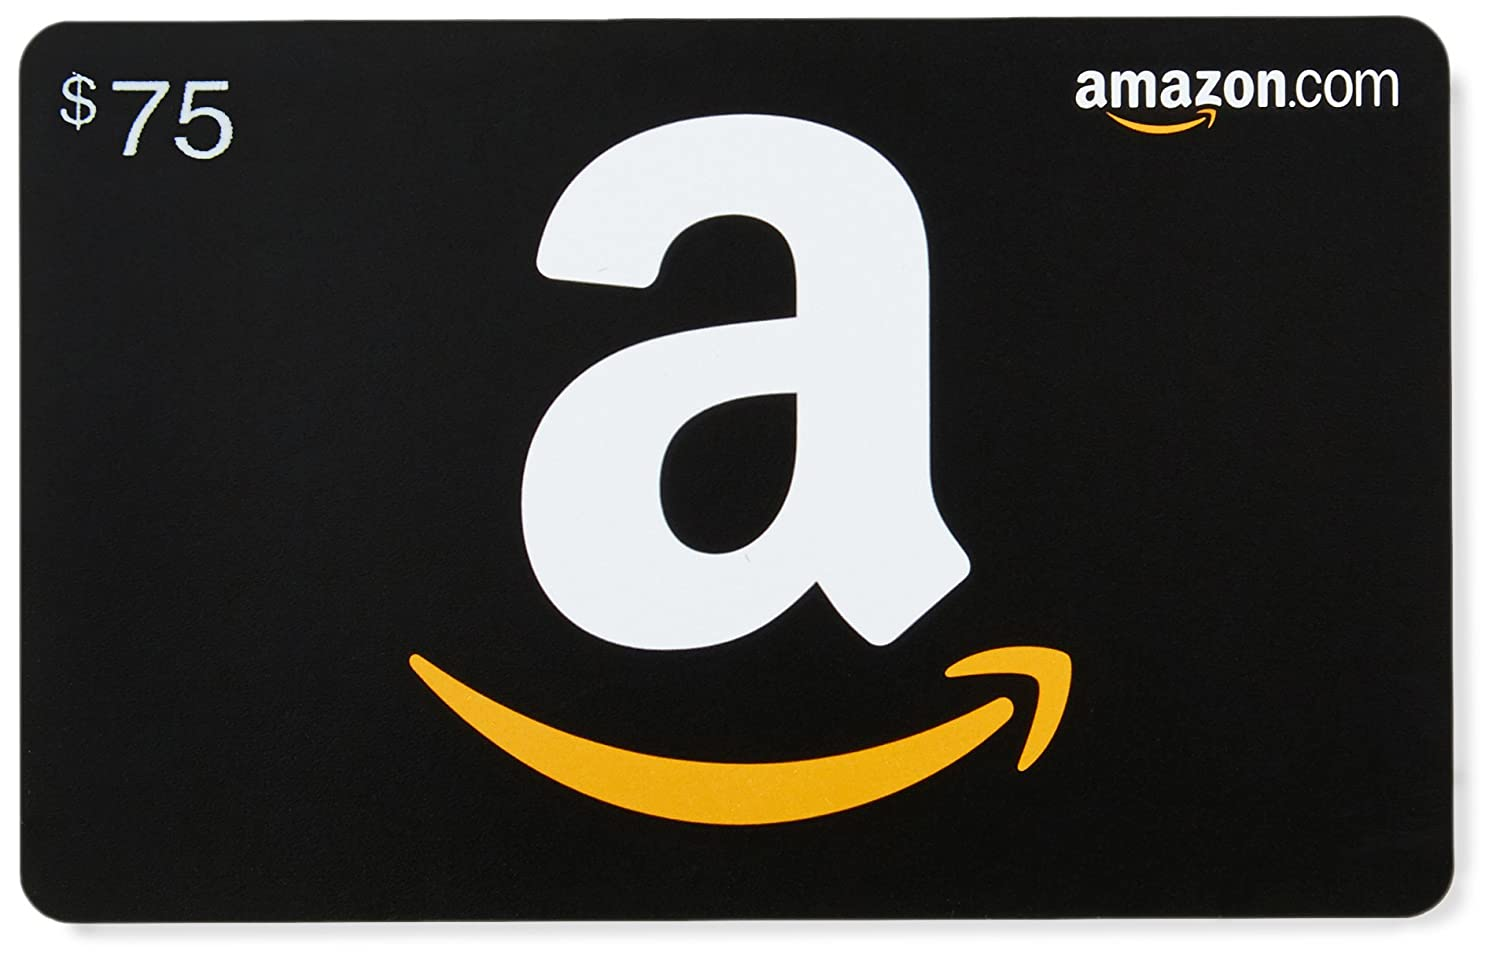 Amazon com Gift Card in a Diamond Plate Tin (Classic Black Card Design)